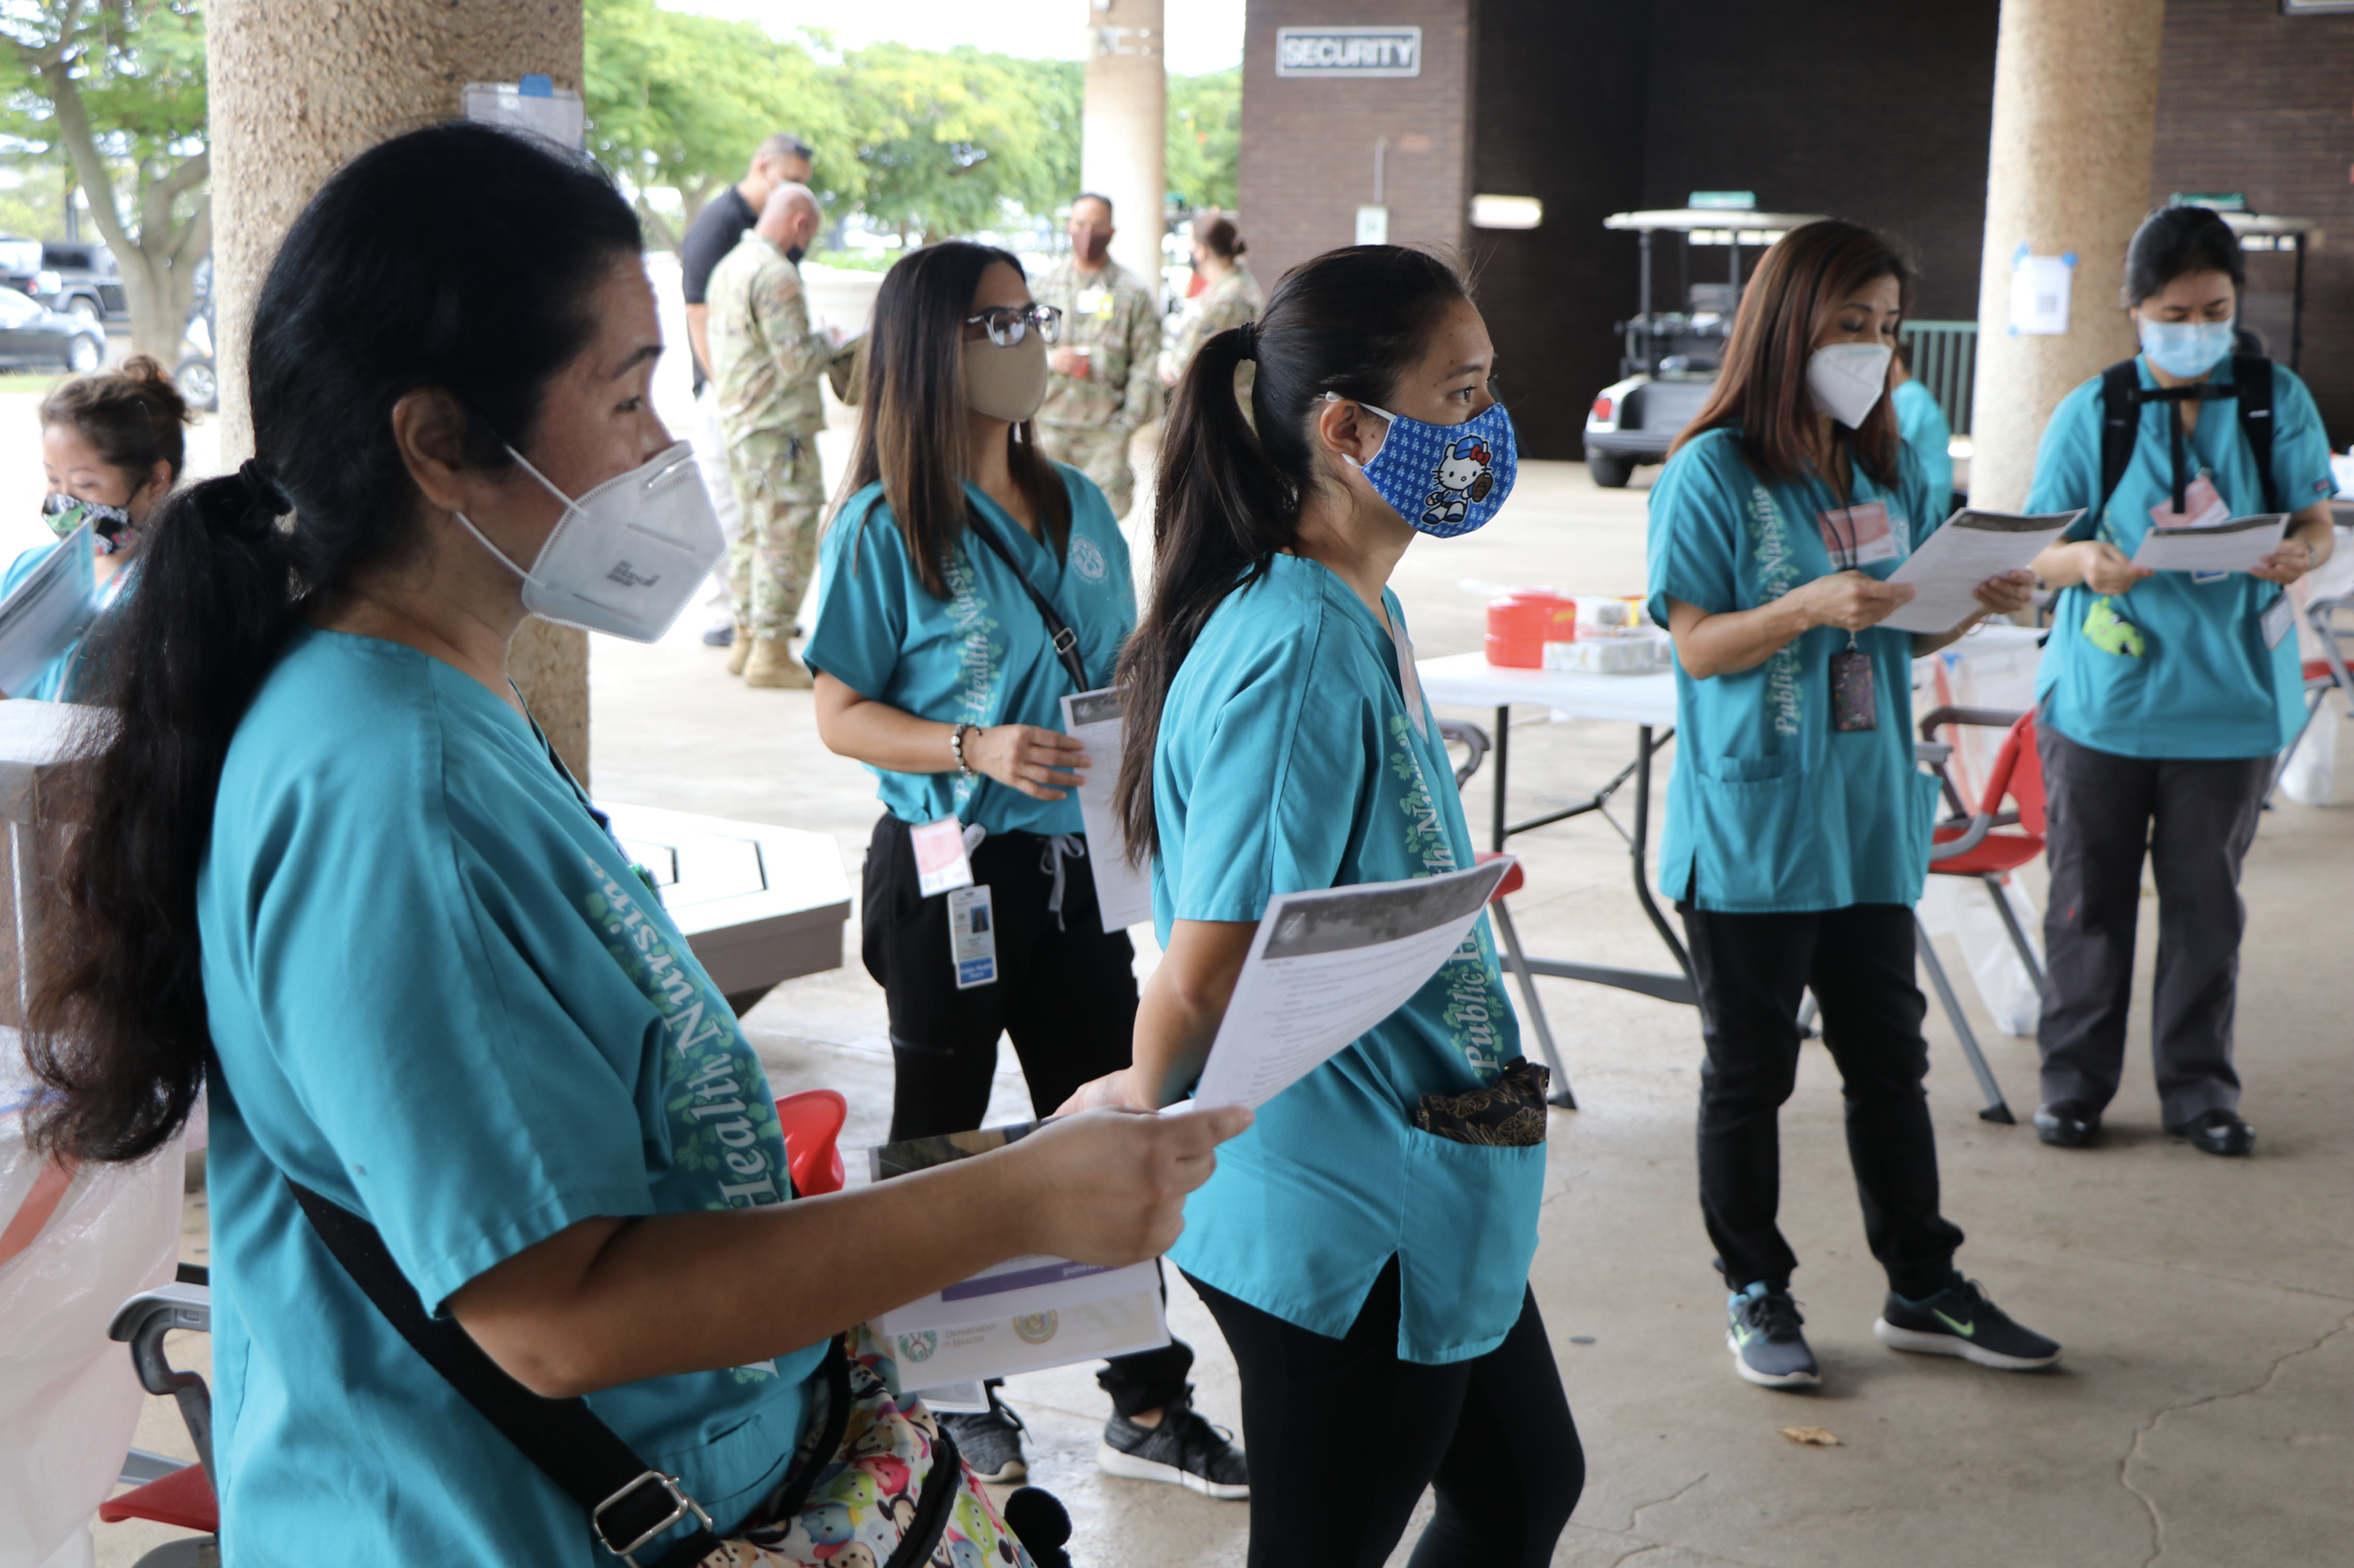 Training Exercise Conducted for Vaccine Distribution in Hawai'i